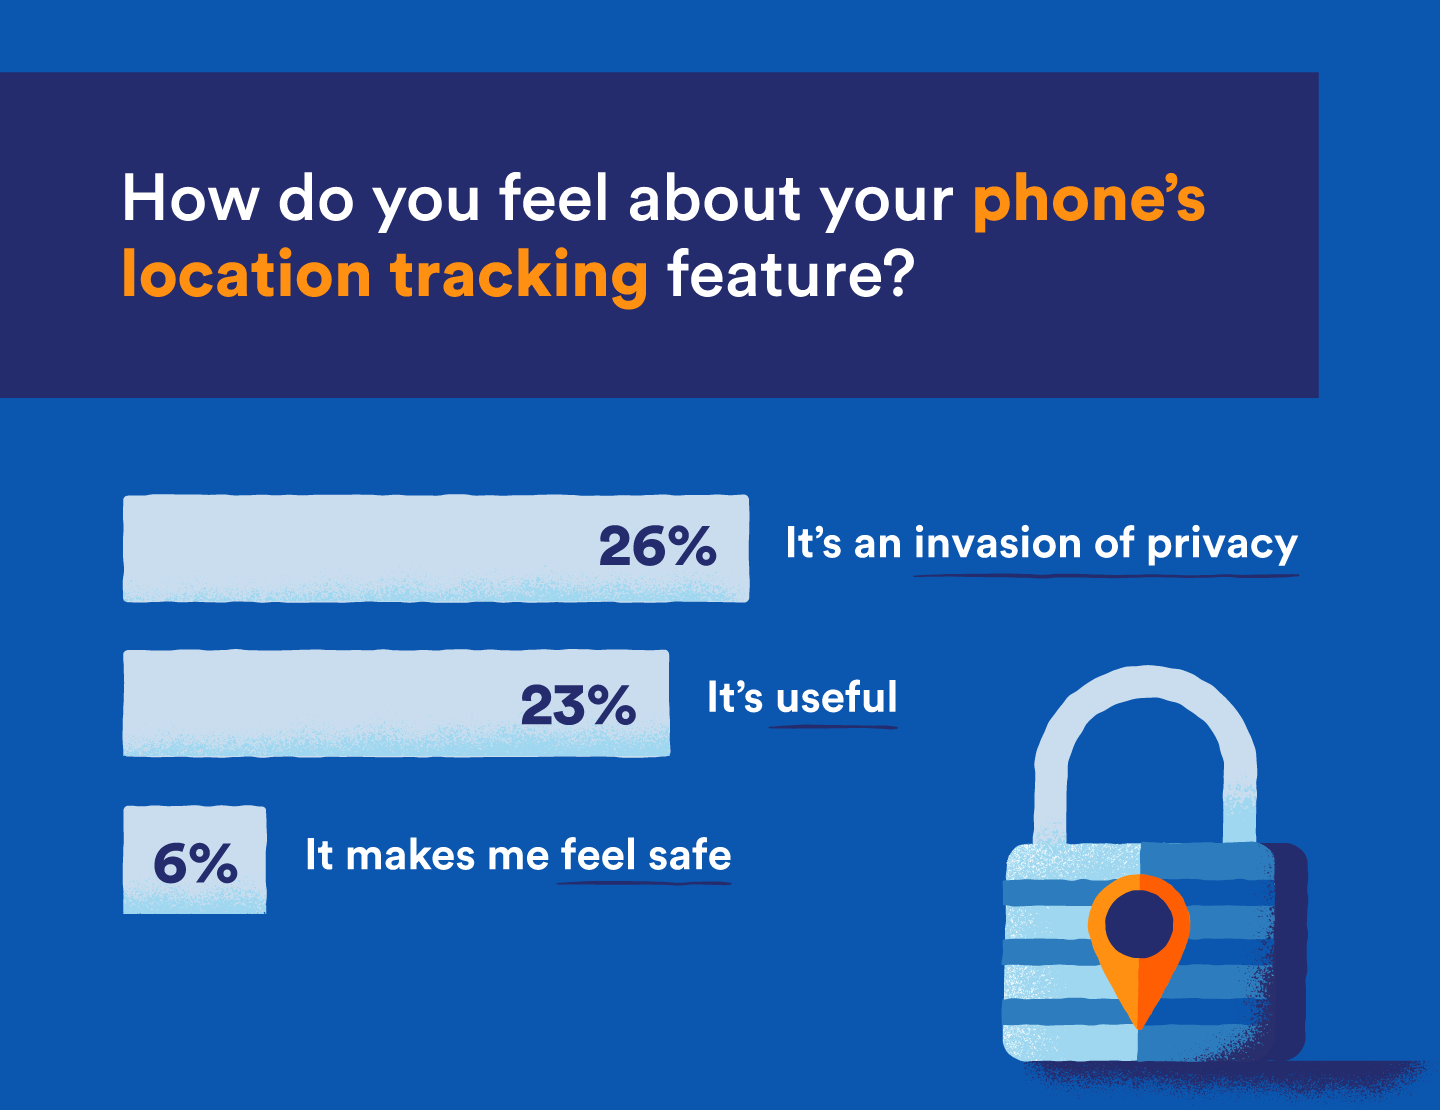 graphic that shows that location sharing is an invasion of privacy